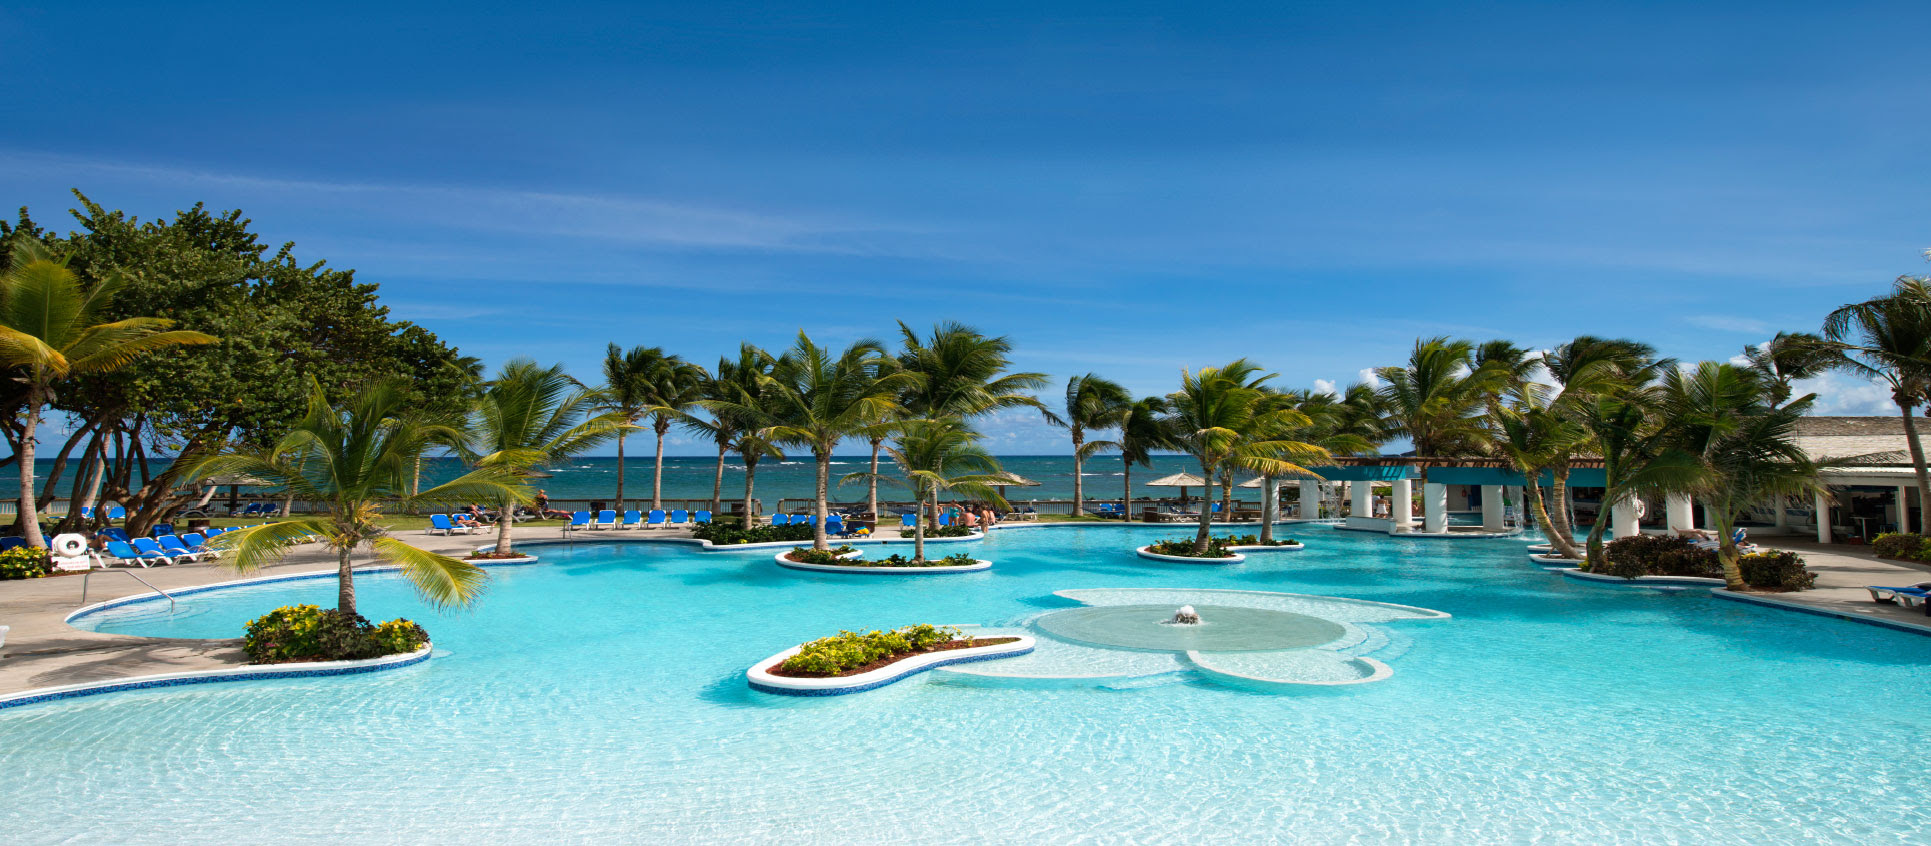 St Lucia All Inclusive Resorts Hotel  Spa  Caribbean